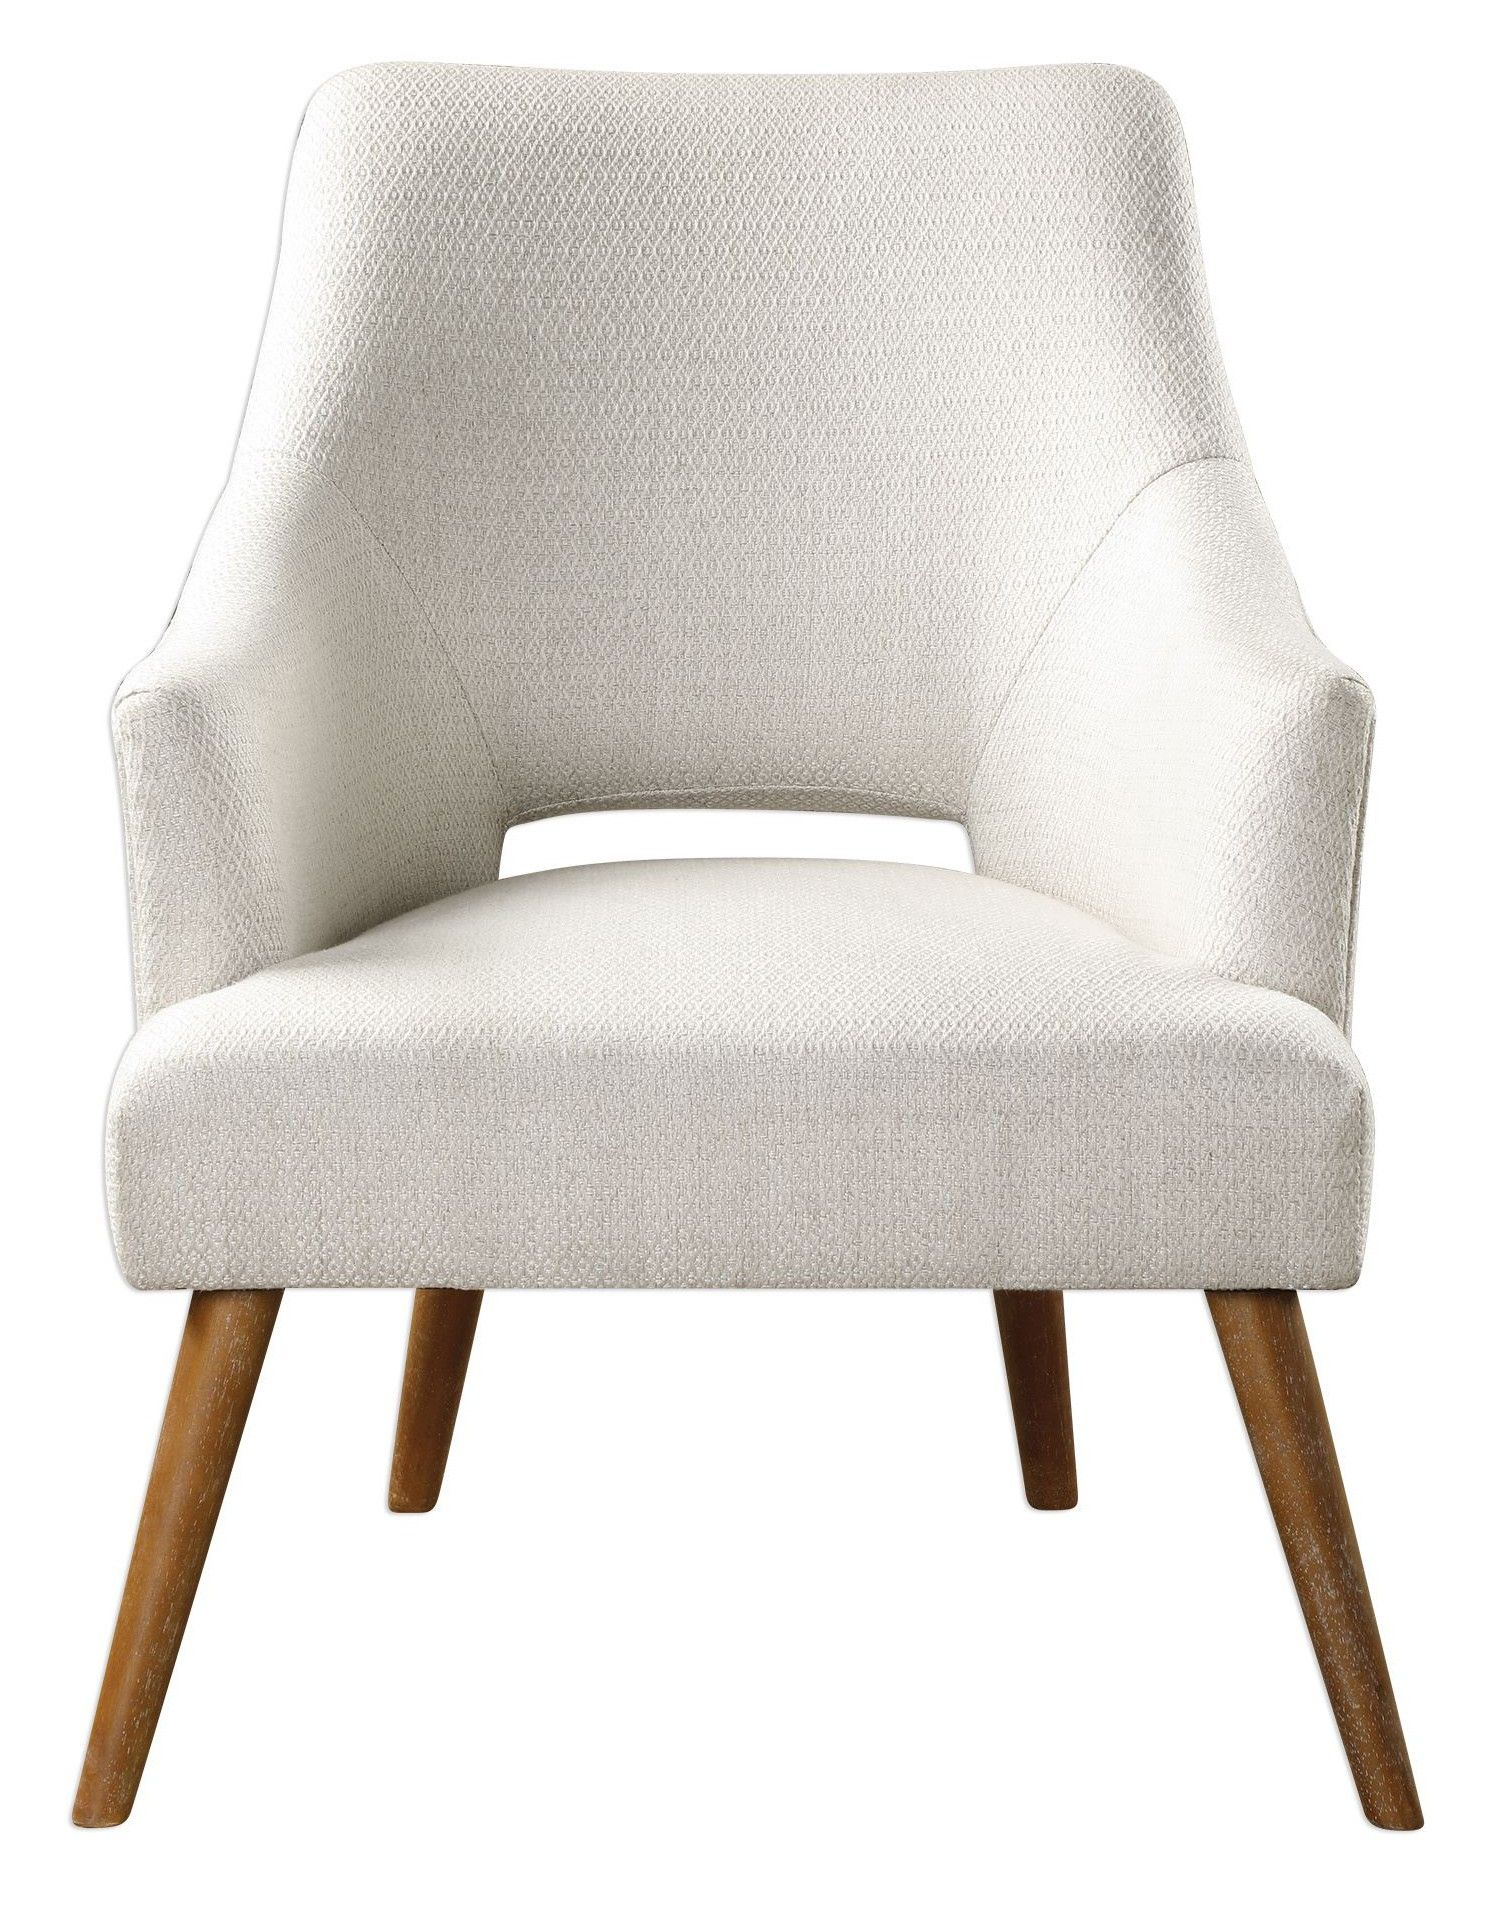 Ordinaire A Staple For Any Mid Century Modern Living Room, The Althea Chair Features  Tapered Wood Legs, A High Back Design And Clean White Upholstery.